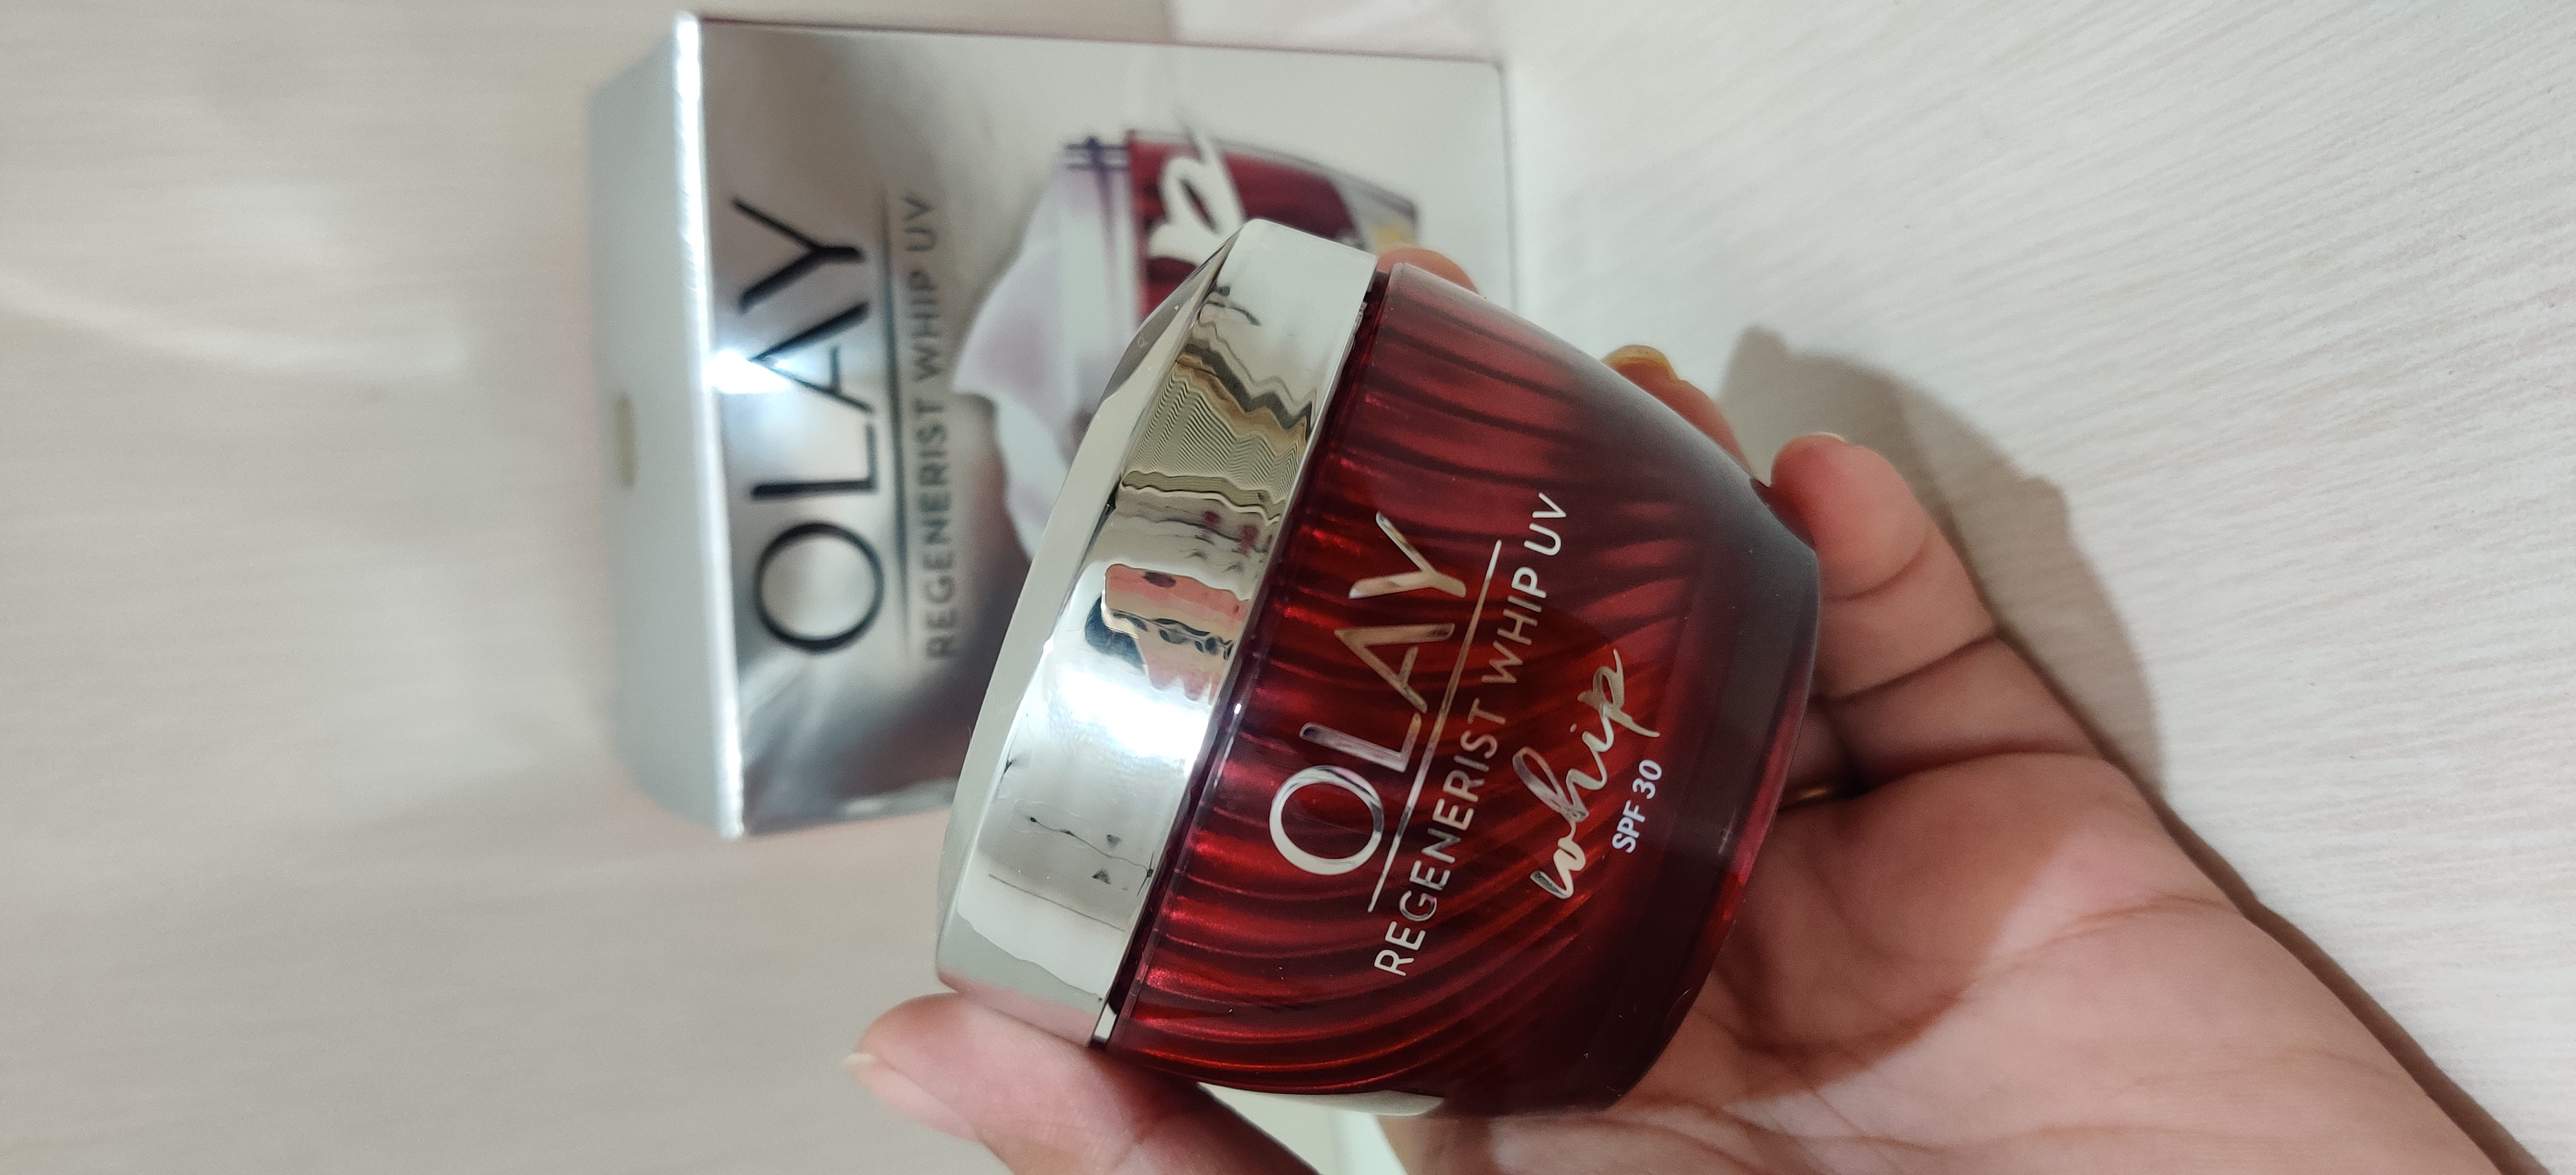 Olay Regenerist Micro-Sculpting Cream-Food to my skin!-By glitterlife_diksha-2